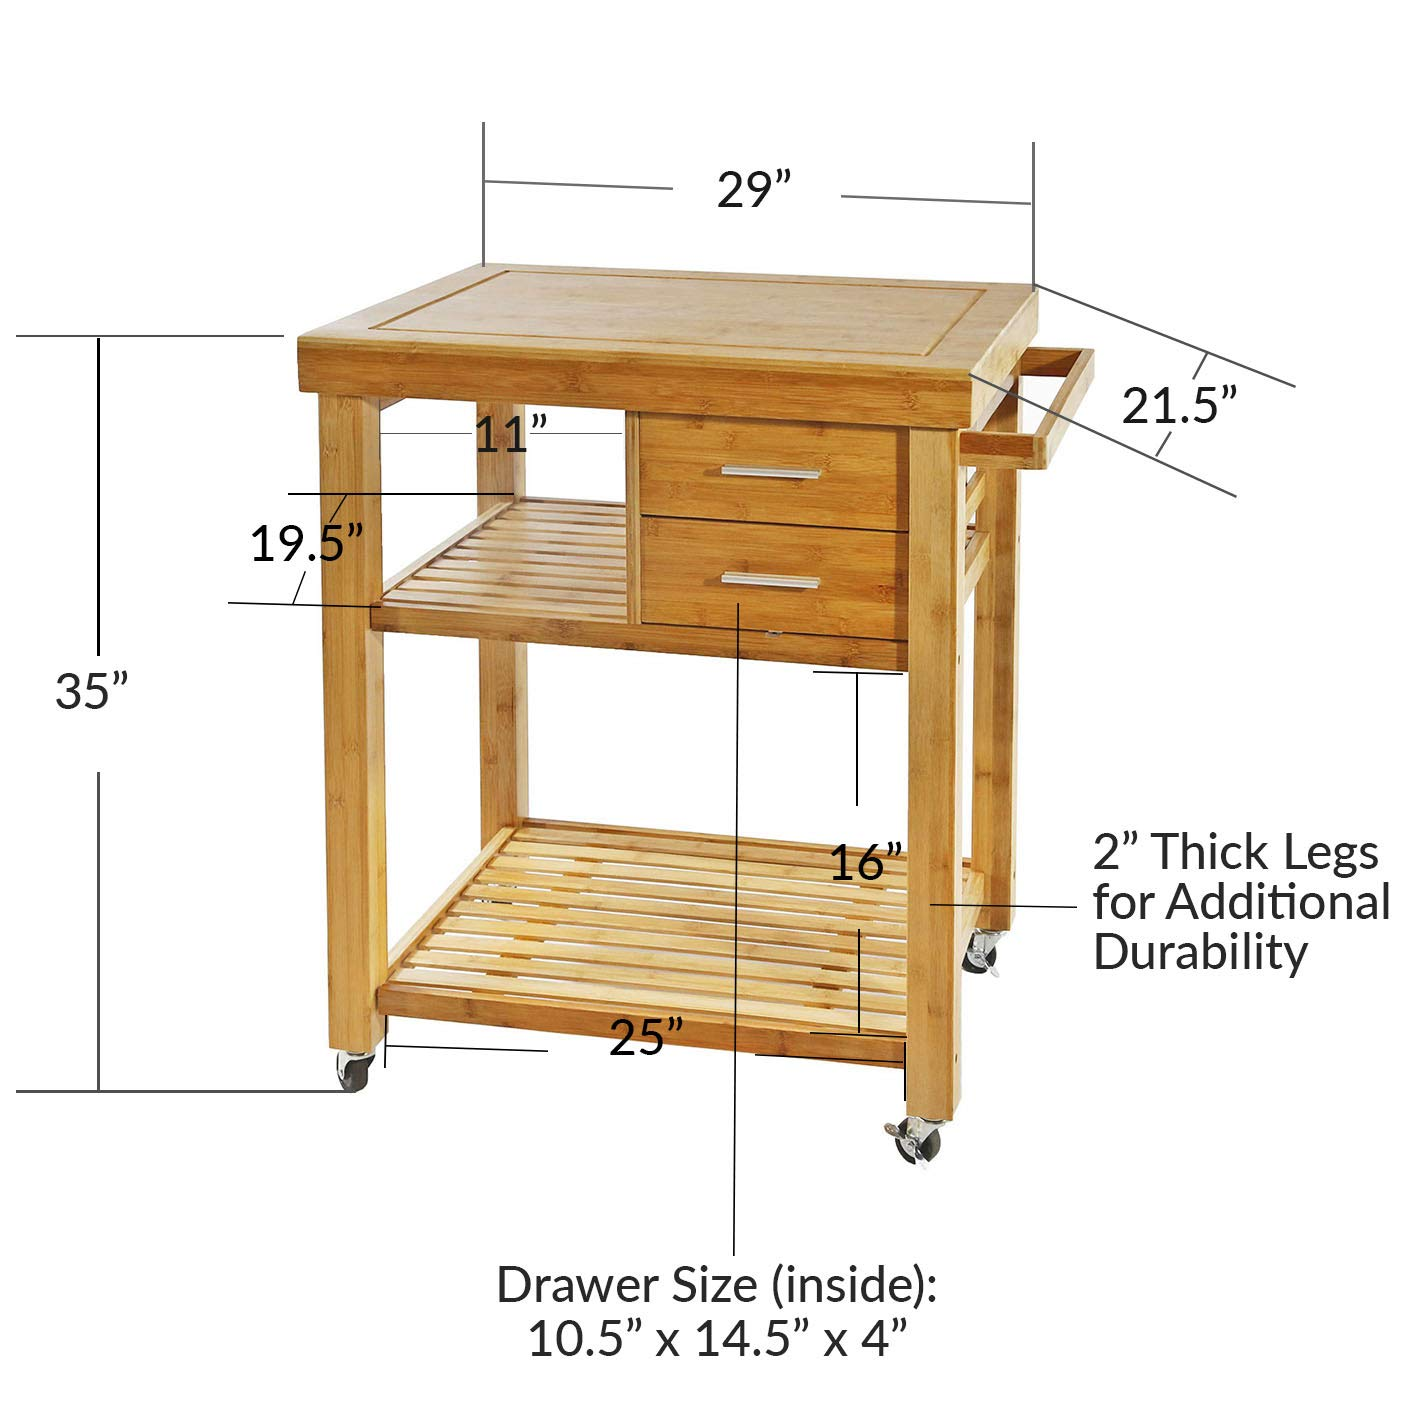 Clevr Rolling Bamboo Wood Kitchen Island Cart Trolley, Cabinet w Towel Rack Drawer Shelves